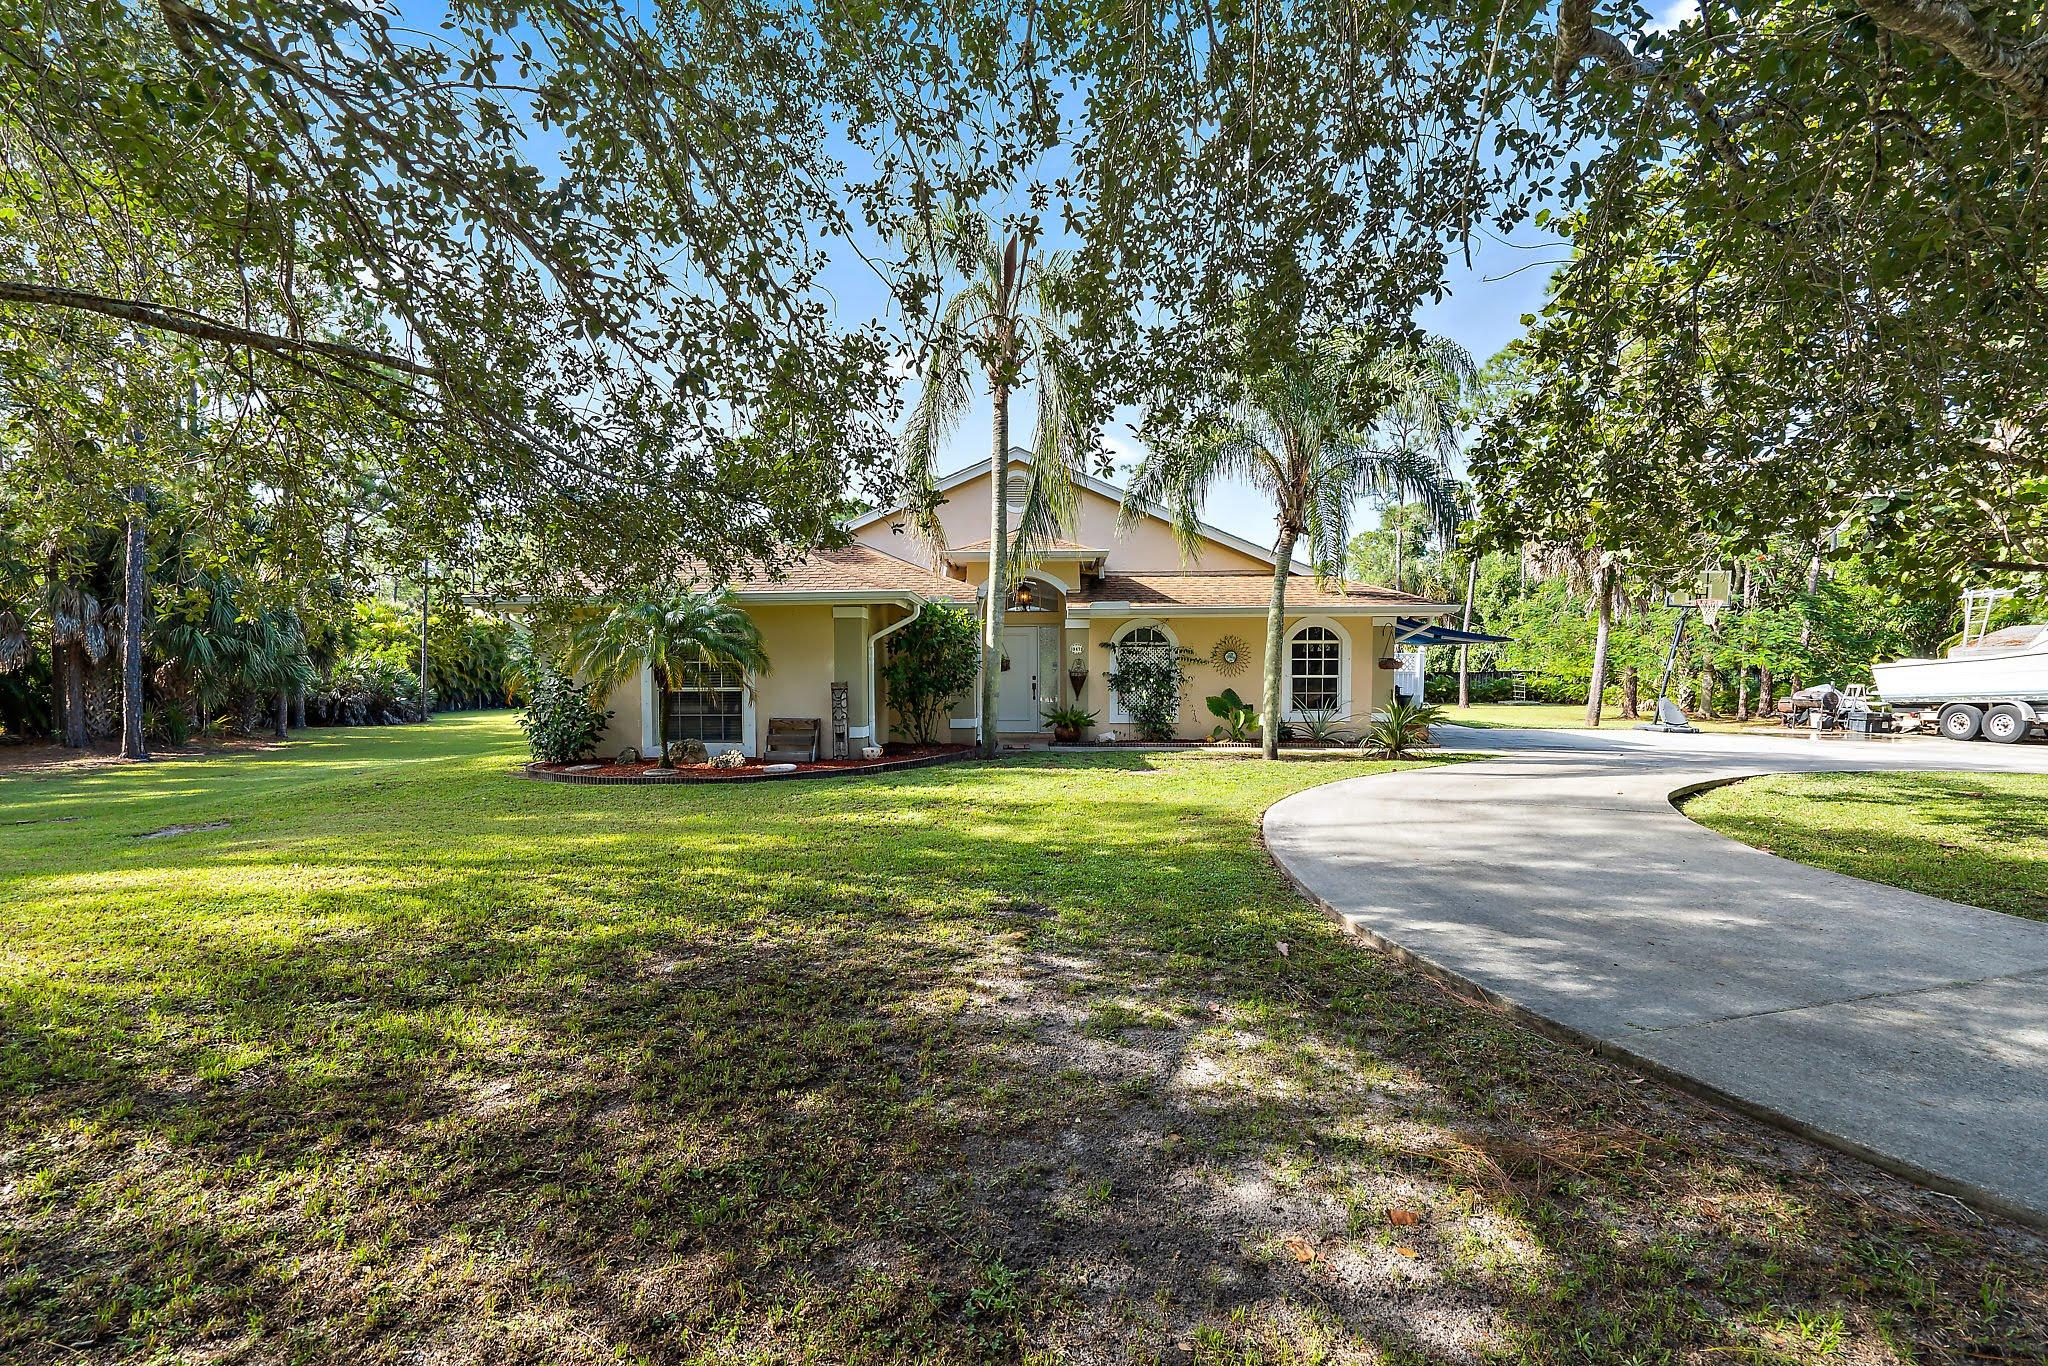 New Home for sale at 13473 152nd Road in Jupiter